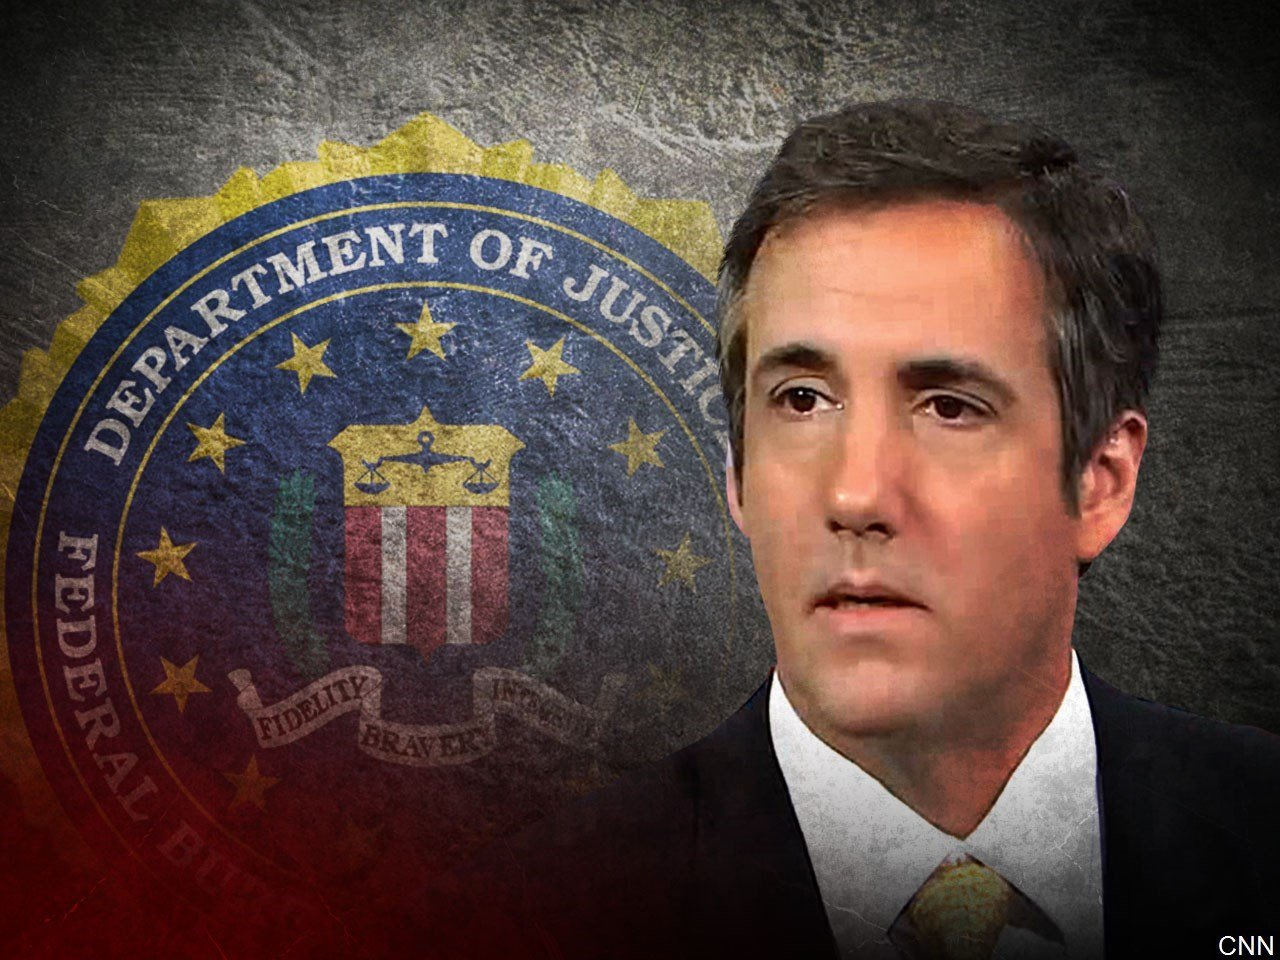 Trump allies fear Federal Bureau of Investigation seized lawyer's conversation tapes